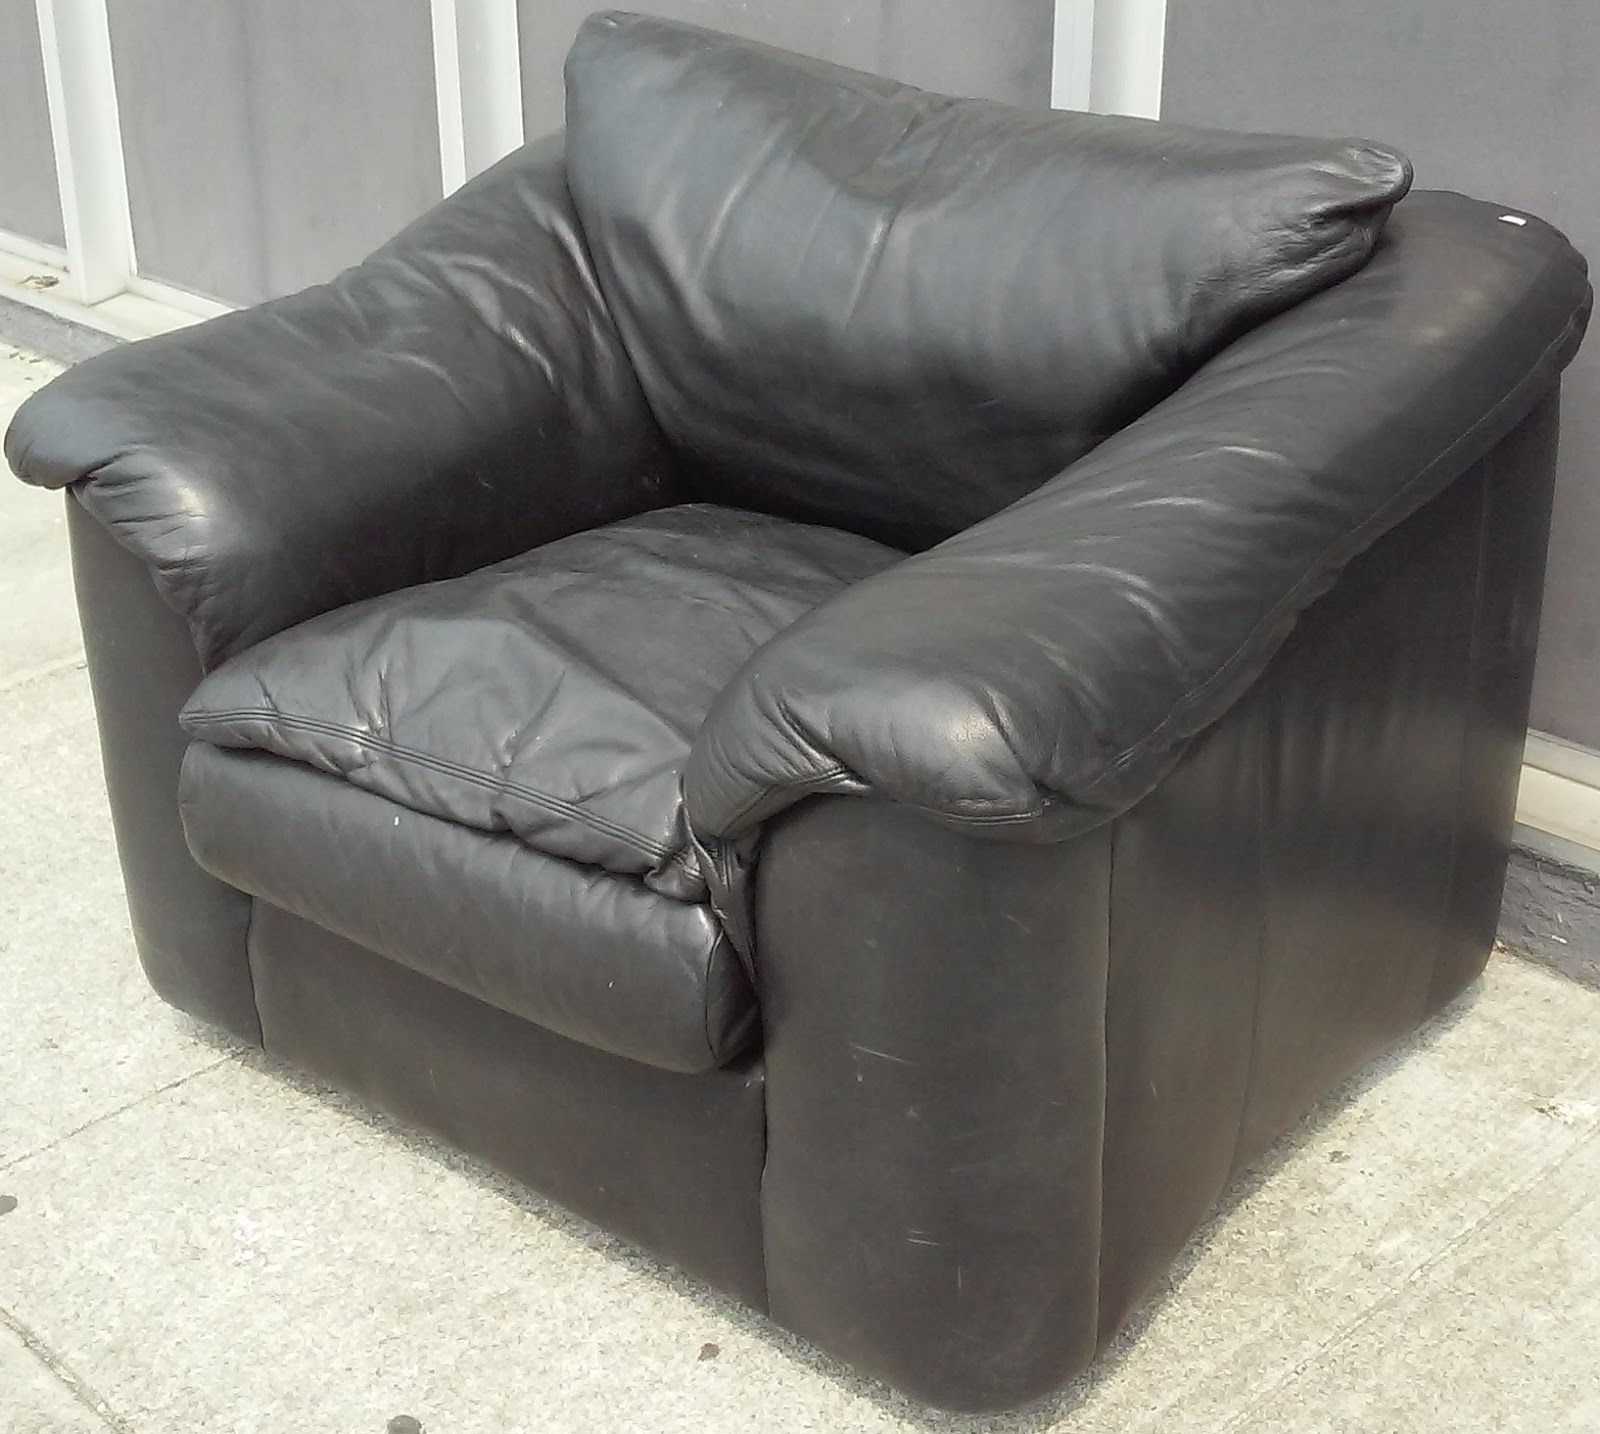 Plush Leather Chair Westfield Outdoor Zero Gravity Uhuru Furniture And Collectibles 16828 Black